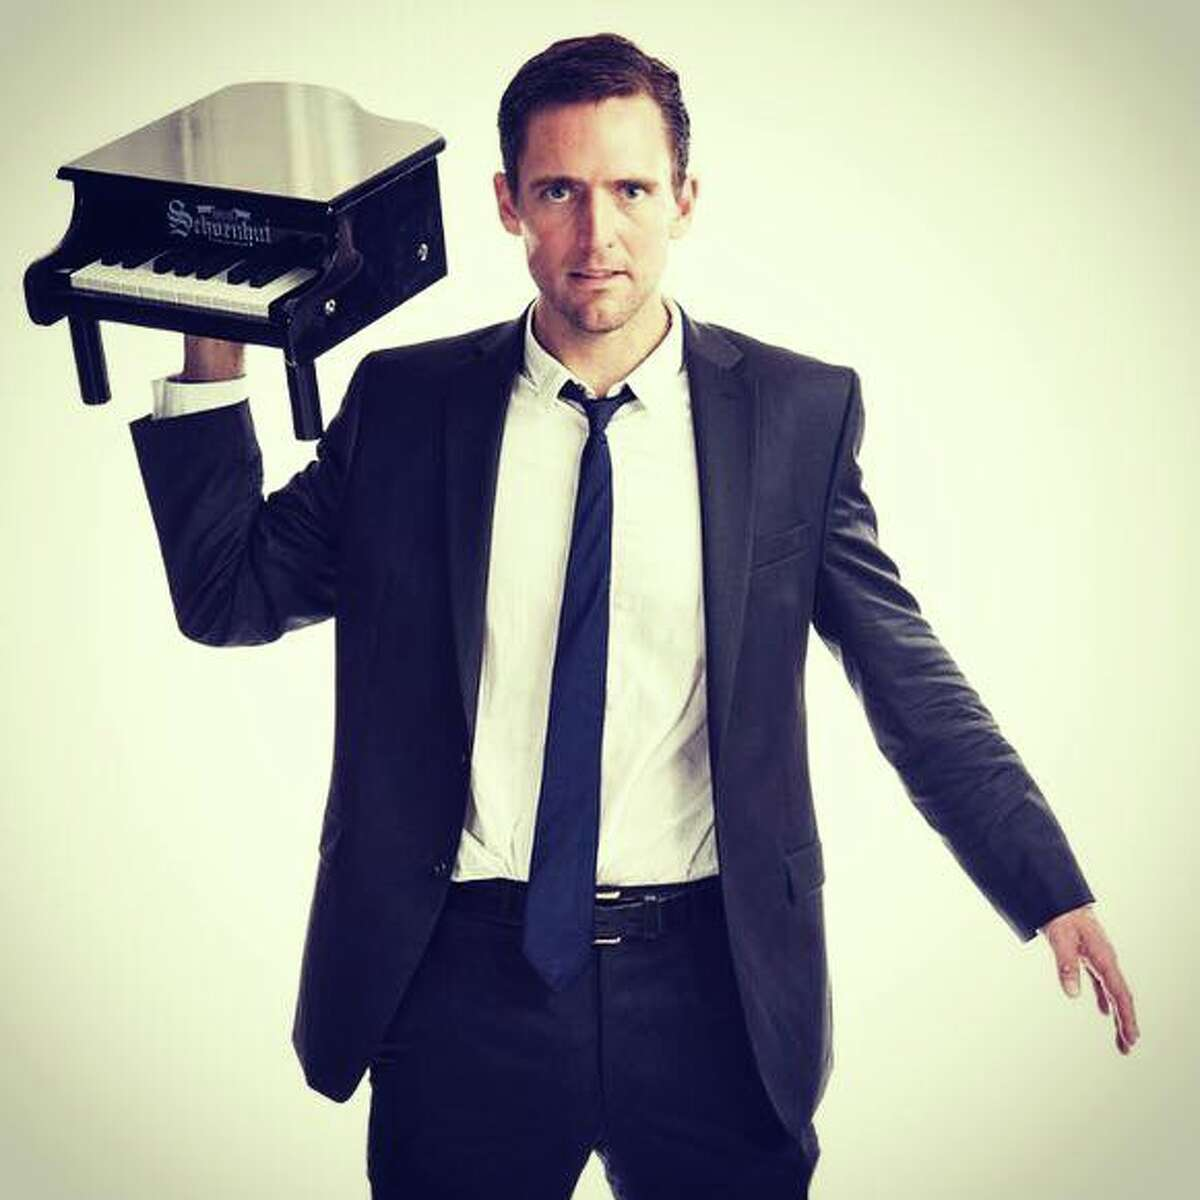 """Owen Benjamin. """"Owen Benjamin is a comedian and actor, best known for his hilarious blend of stand-up and musical comedy."""" With special guest Greg Aidala. When: Saturday, Oct. 10, 8 p.m. Where: The Linda - WAMC's Performing Arts Center, 339 Central Ave, Albany. For more info and tickets, visit the website."""